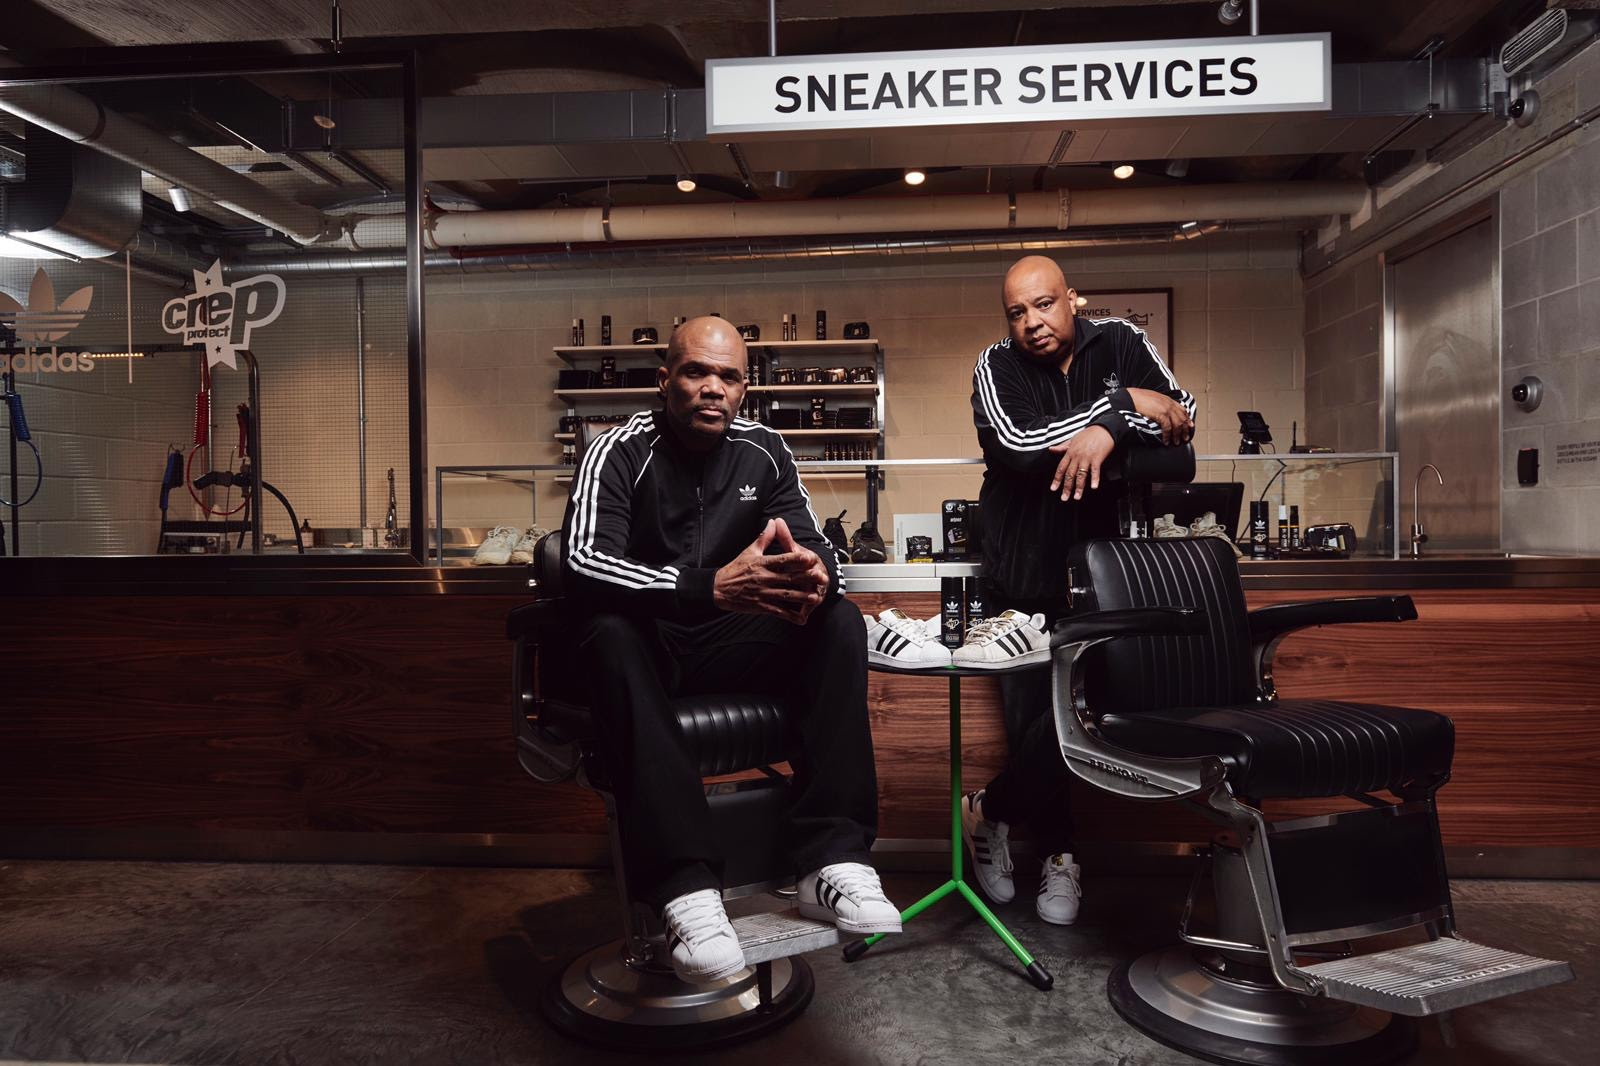 Crep Protect Links up with adidas Originals for a 'Sneaker Services' Space in Its New Oxford Street Store